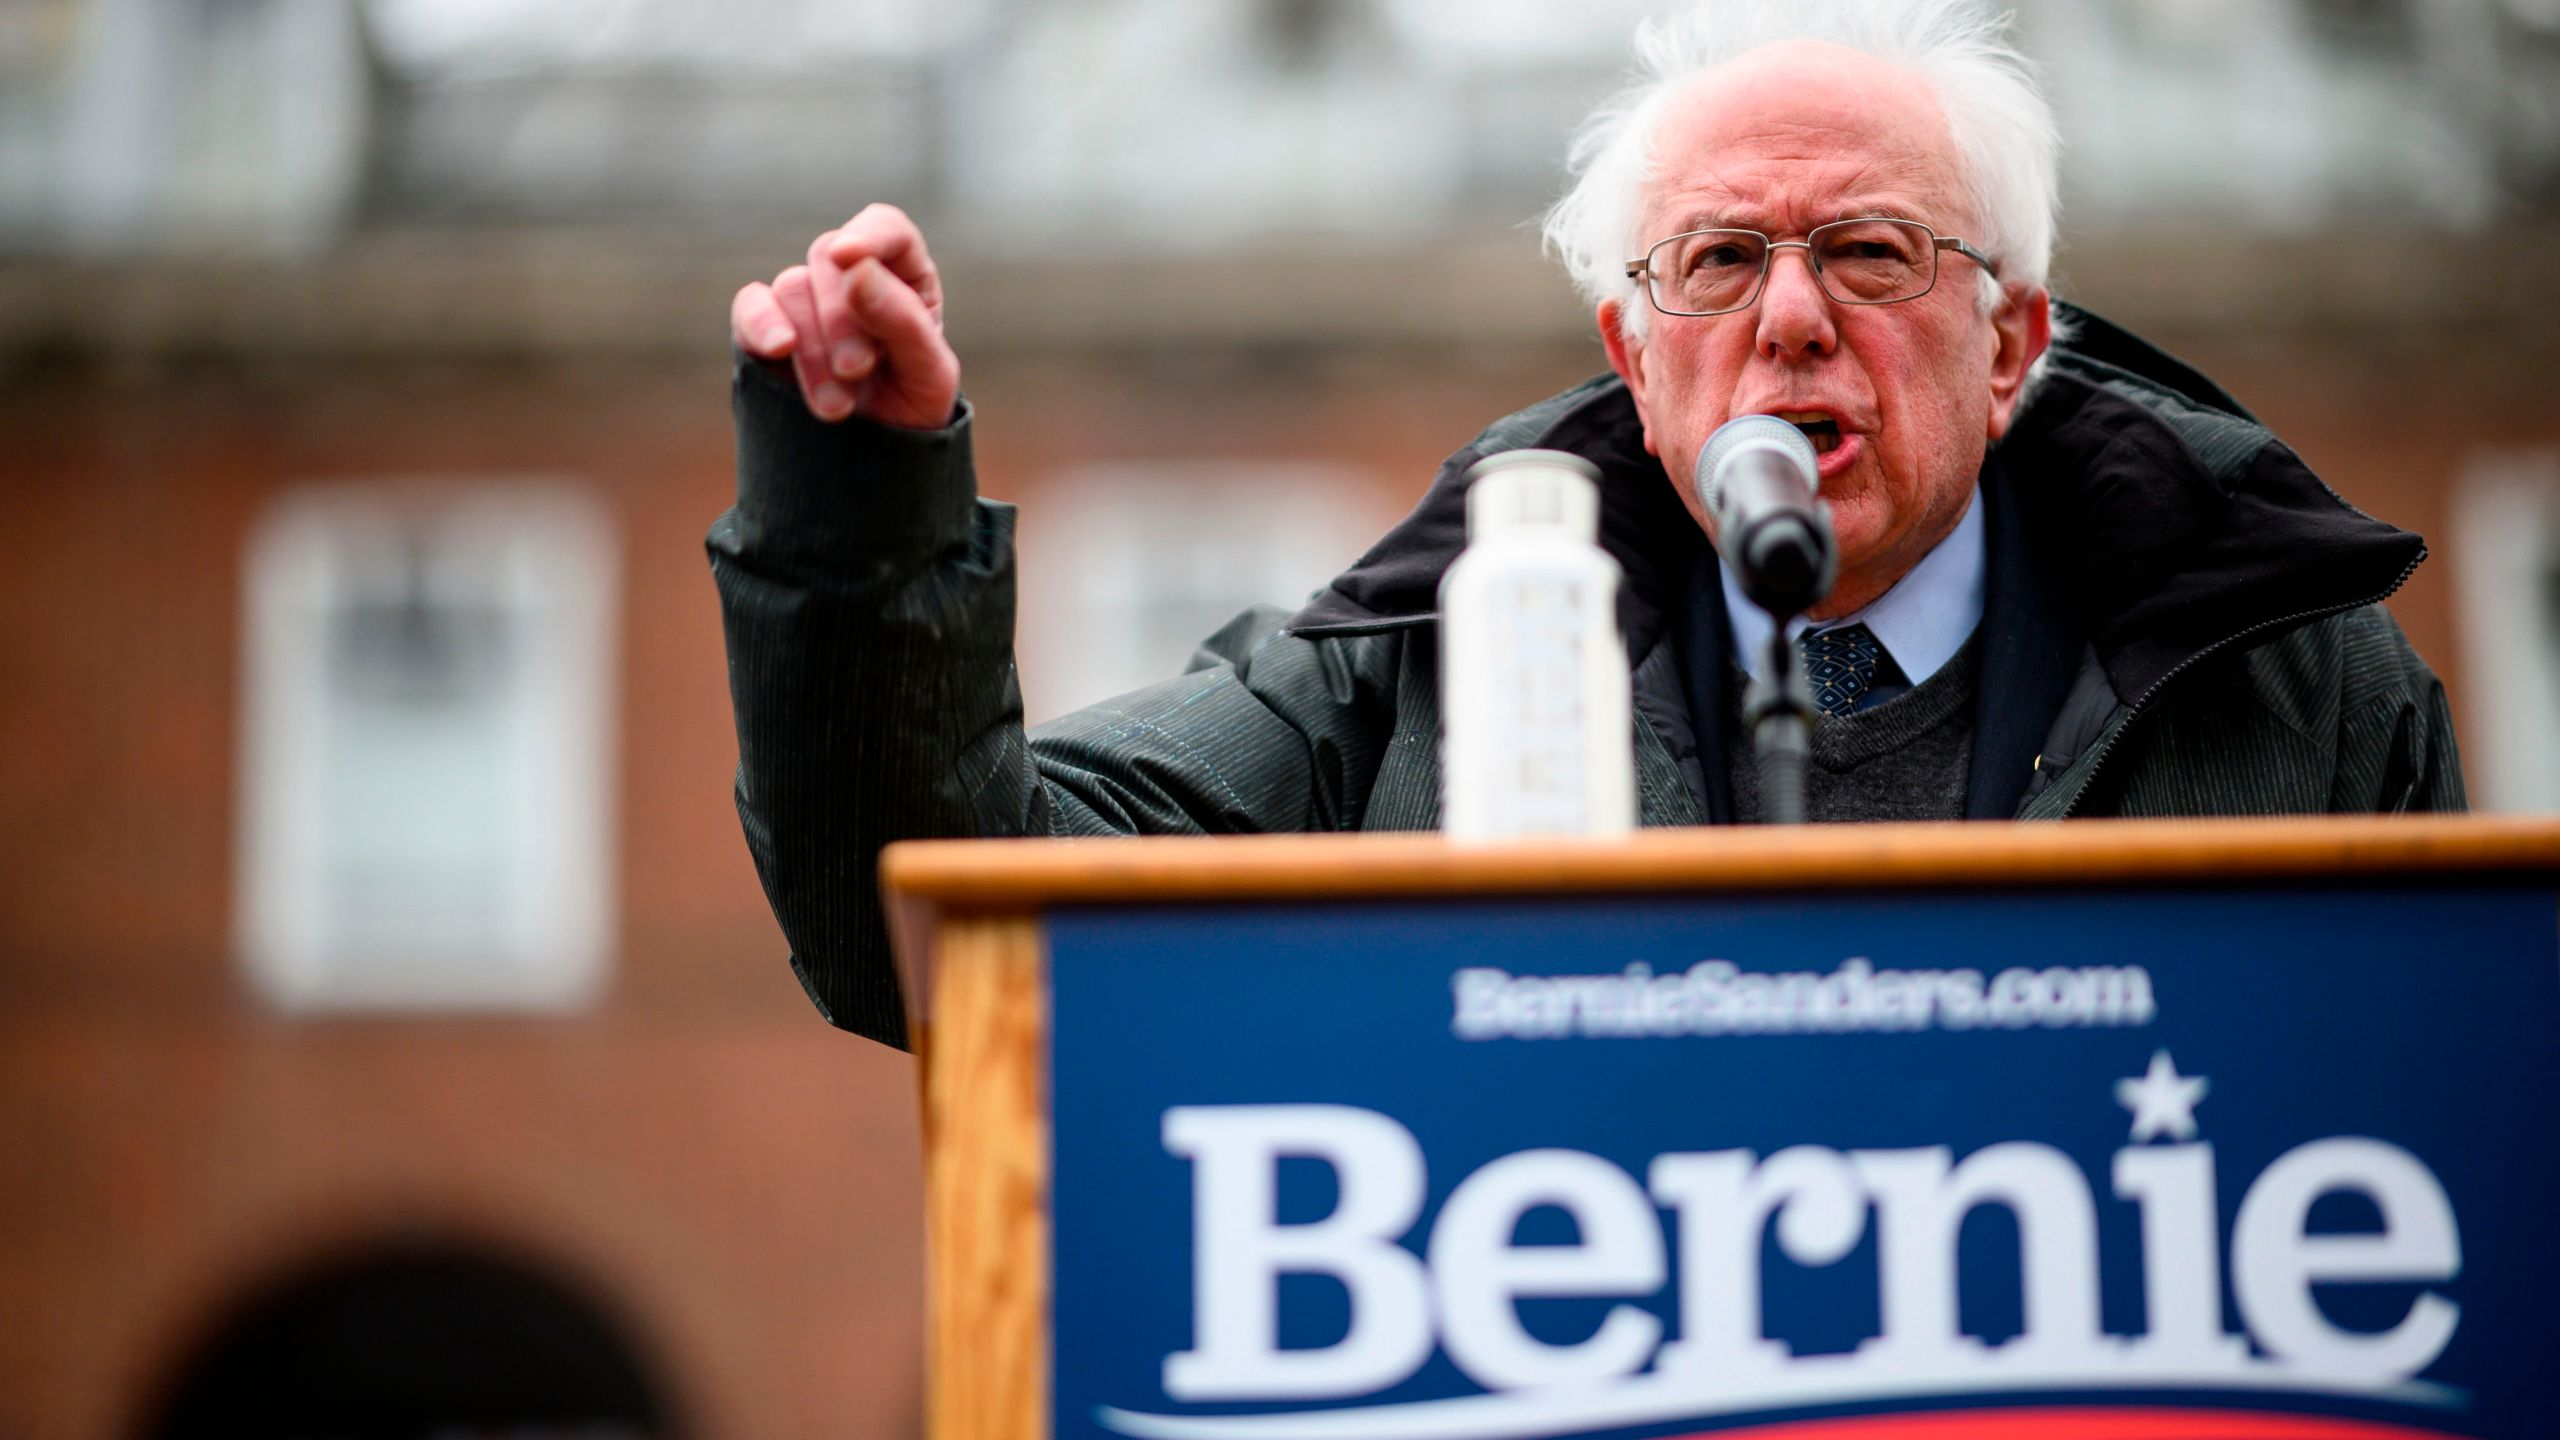 U.S. Senator Bernie Sanders speaks during a rally to kick off his 2020 U.S. presidential campaign, in the Brooklyn borough of New York City on March 2, 2019. (Credit: JOHANNES EISELE/AFP/Getty Images)